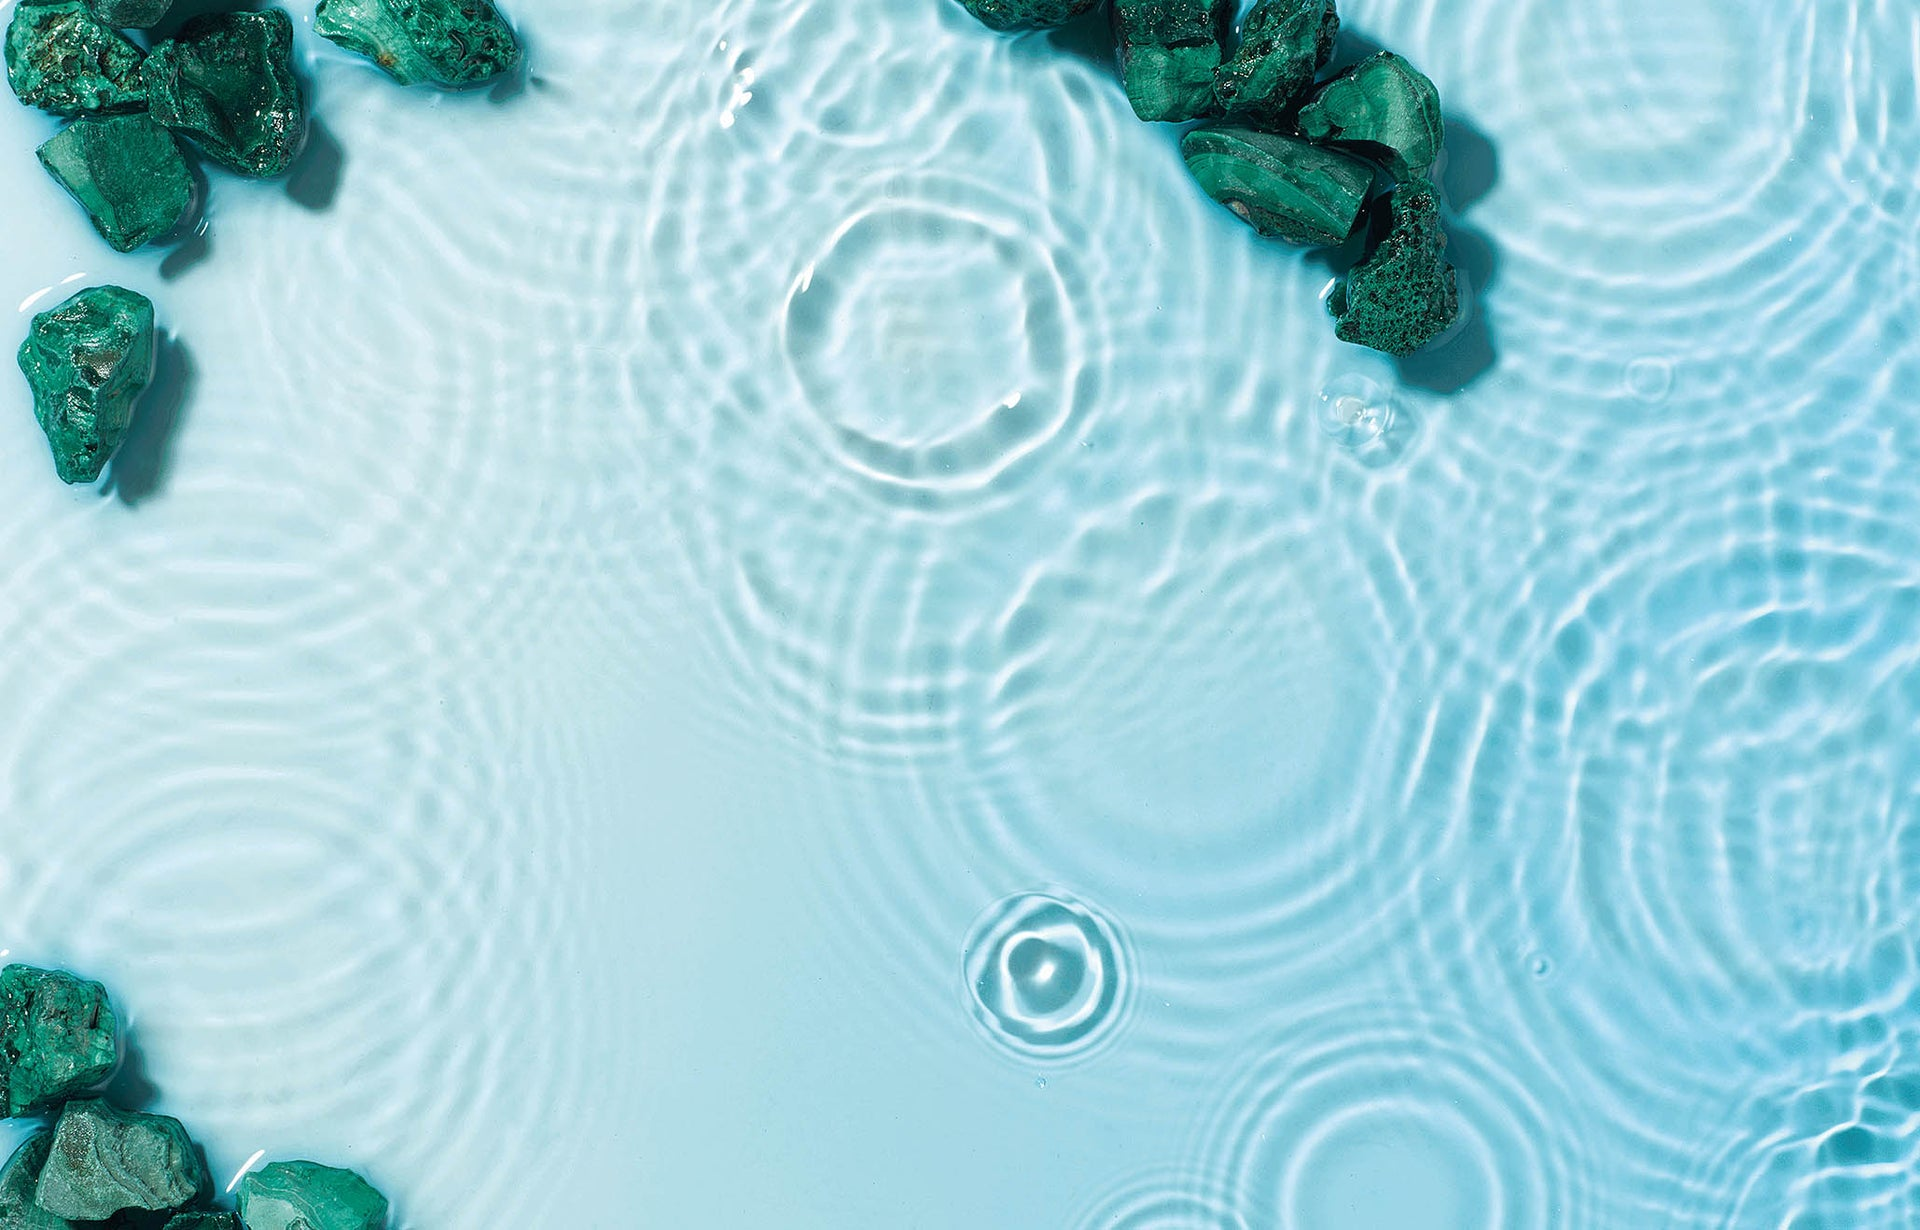 Blue Green Algae vs Blue Spirulina: what's the difference?